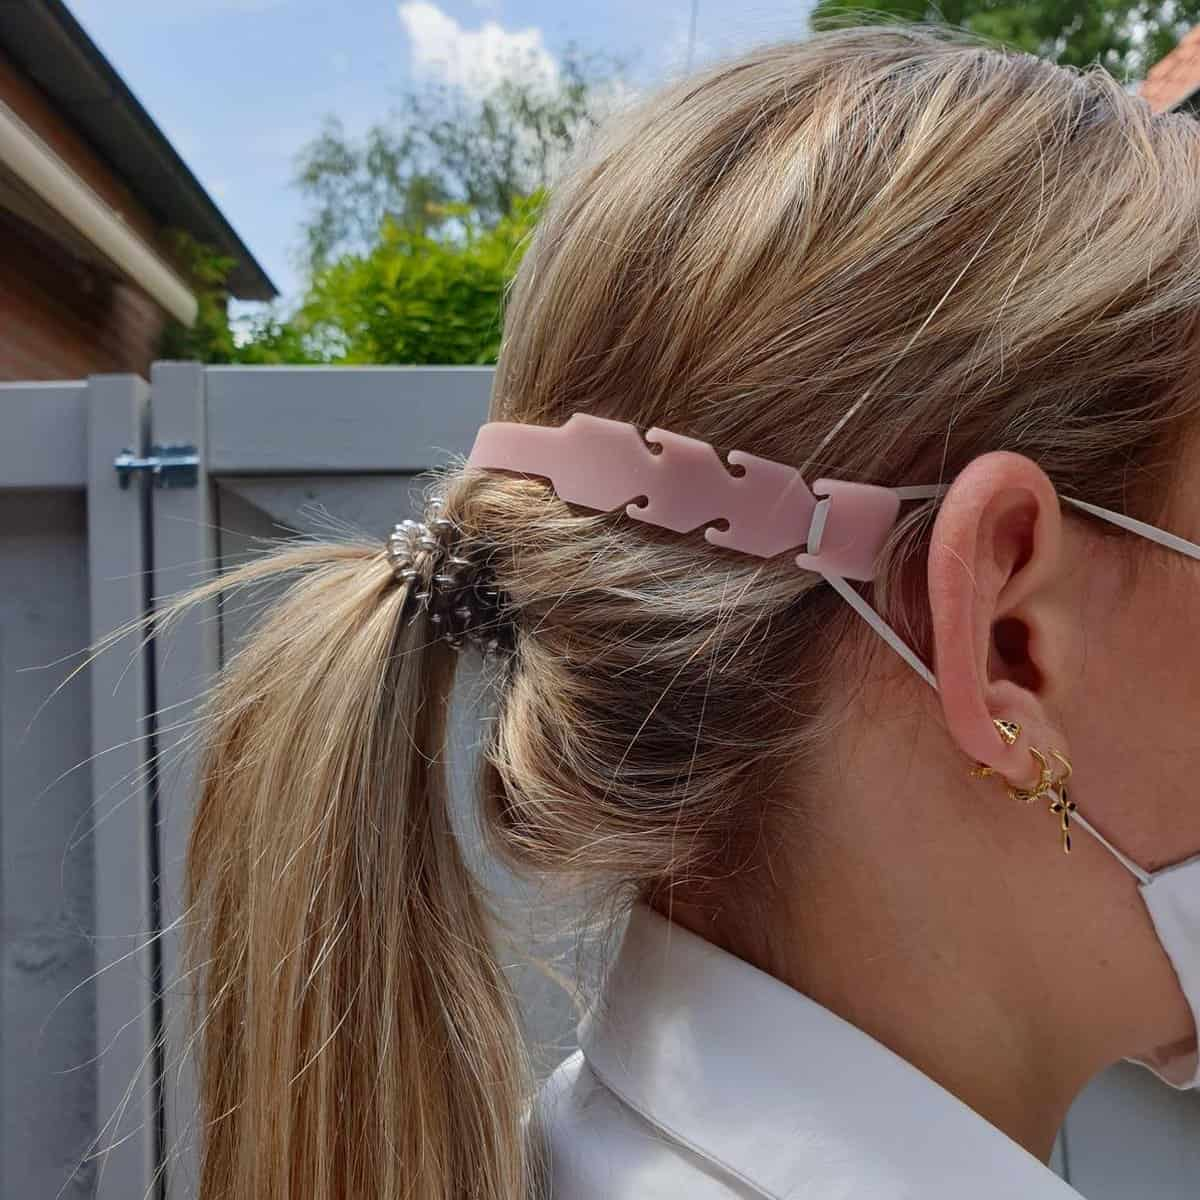 Ear saver op model